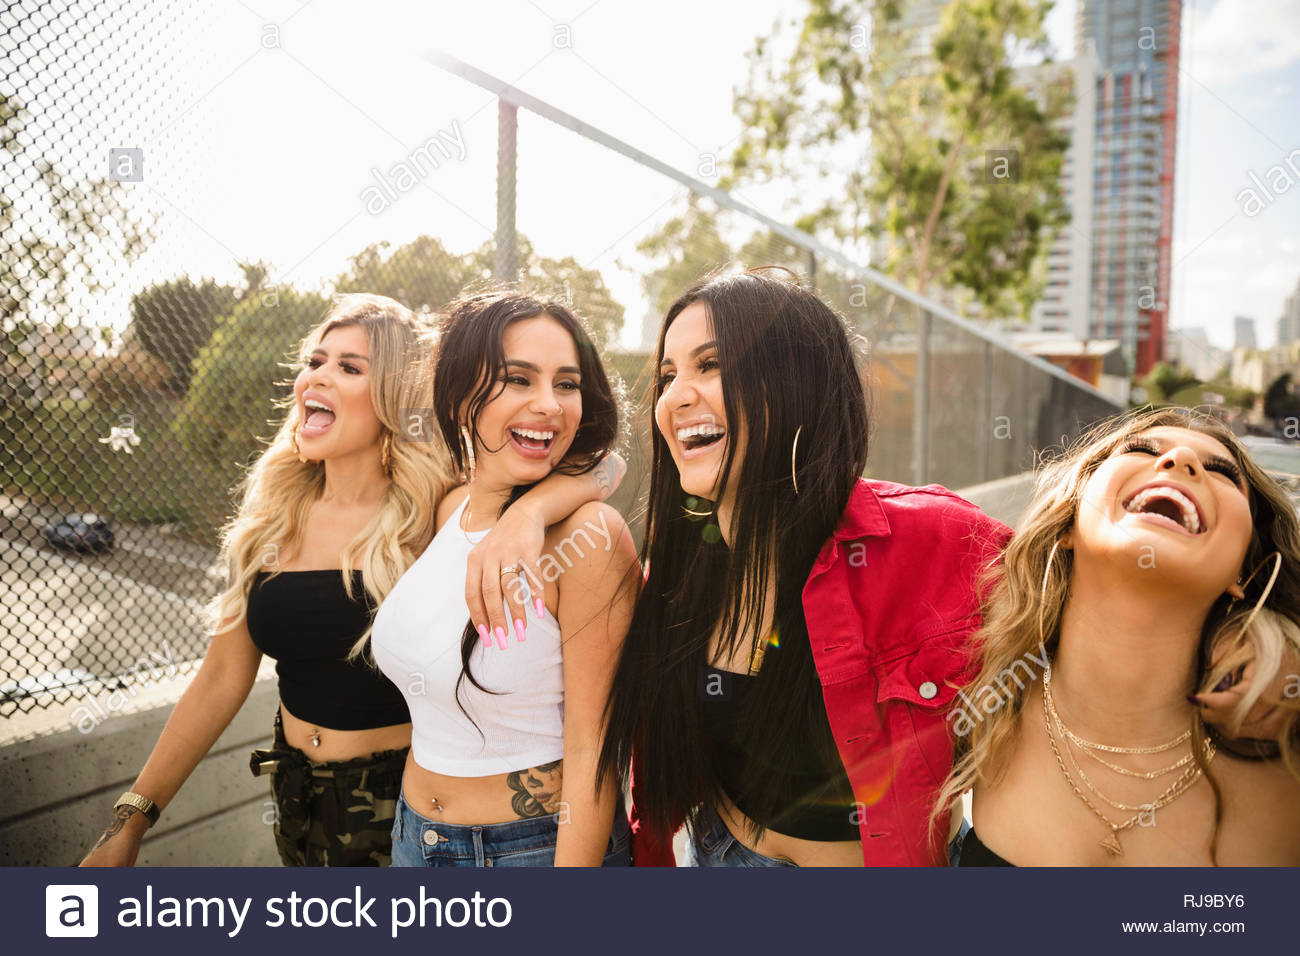 Latinx young women friends laughing and walking along overpass - Stock Image